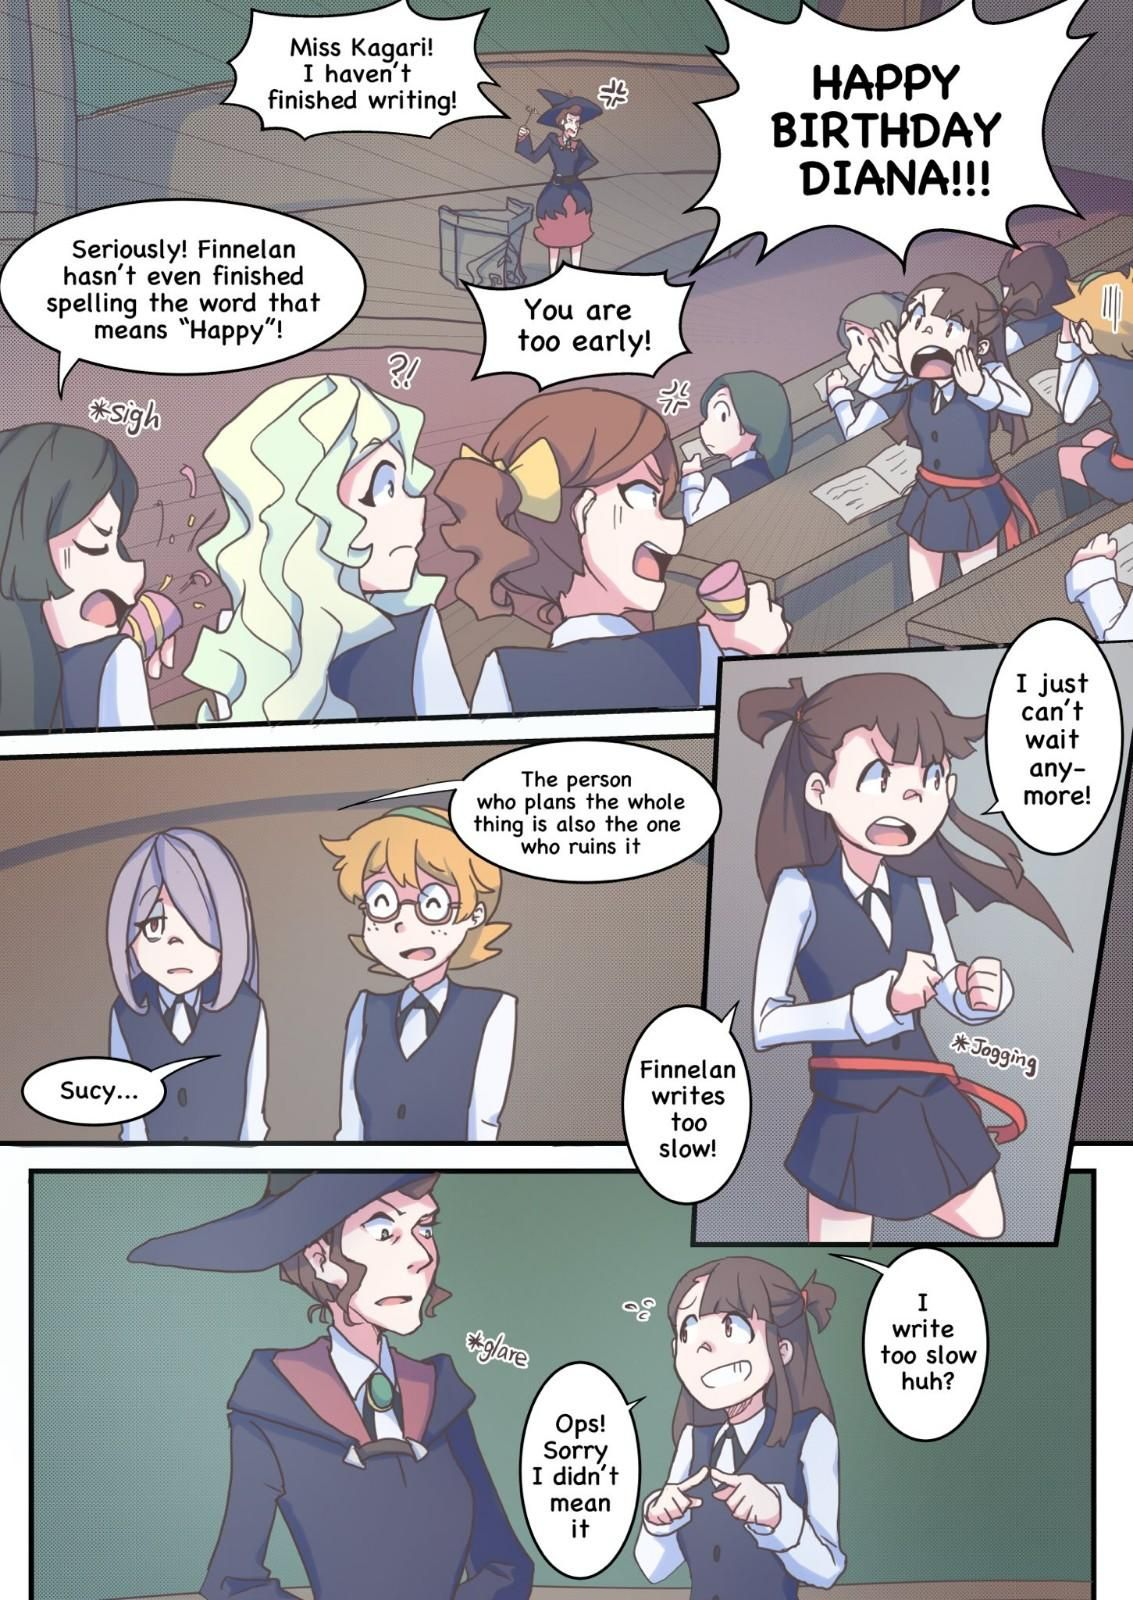 Pin By Chloetse On Diana Akko Little Witch Academy My Little Witch Academia Anime Girlxgirl